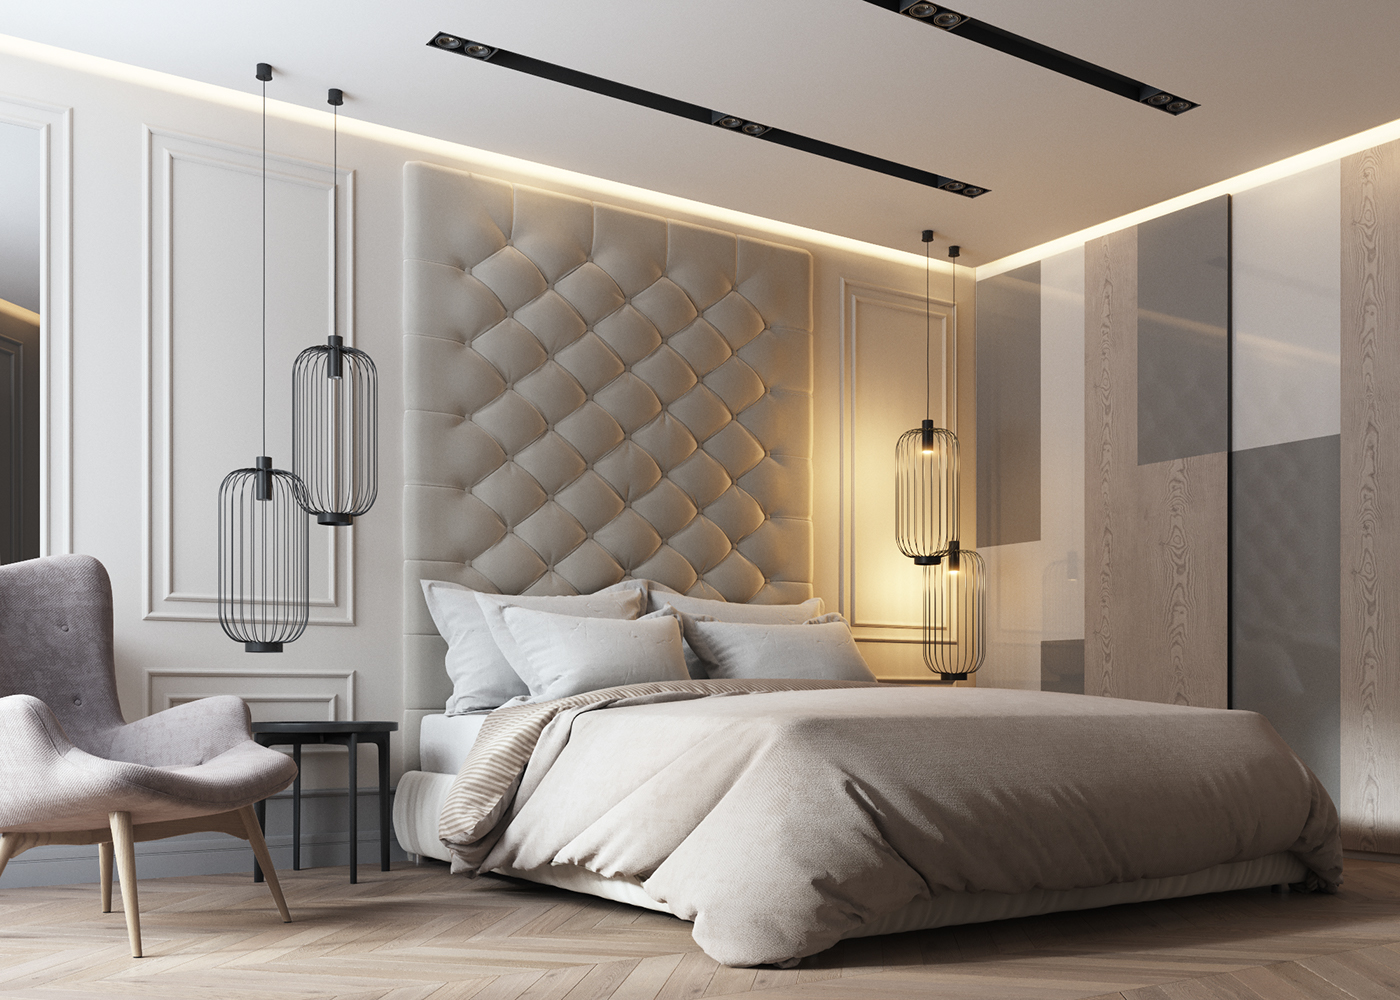 Image of: Contemporary Bedroom Decorating Ideas